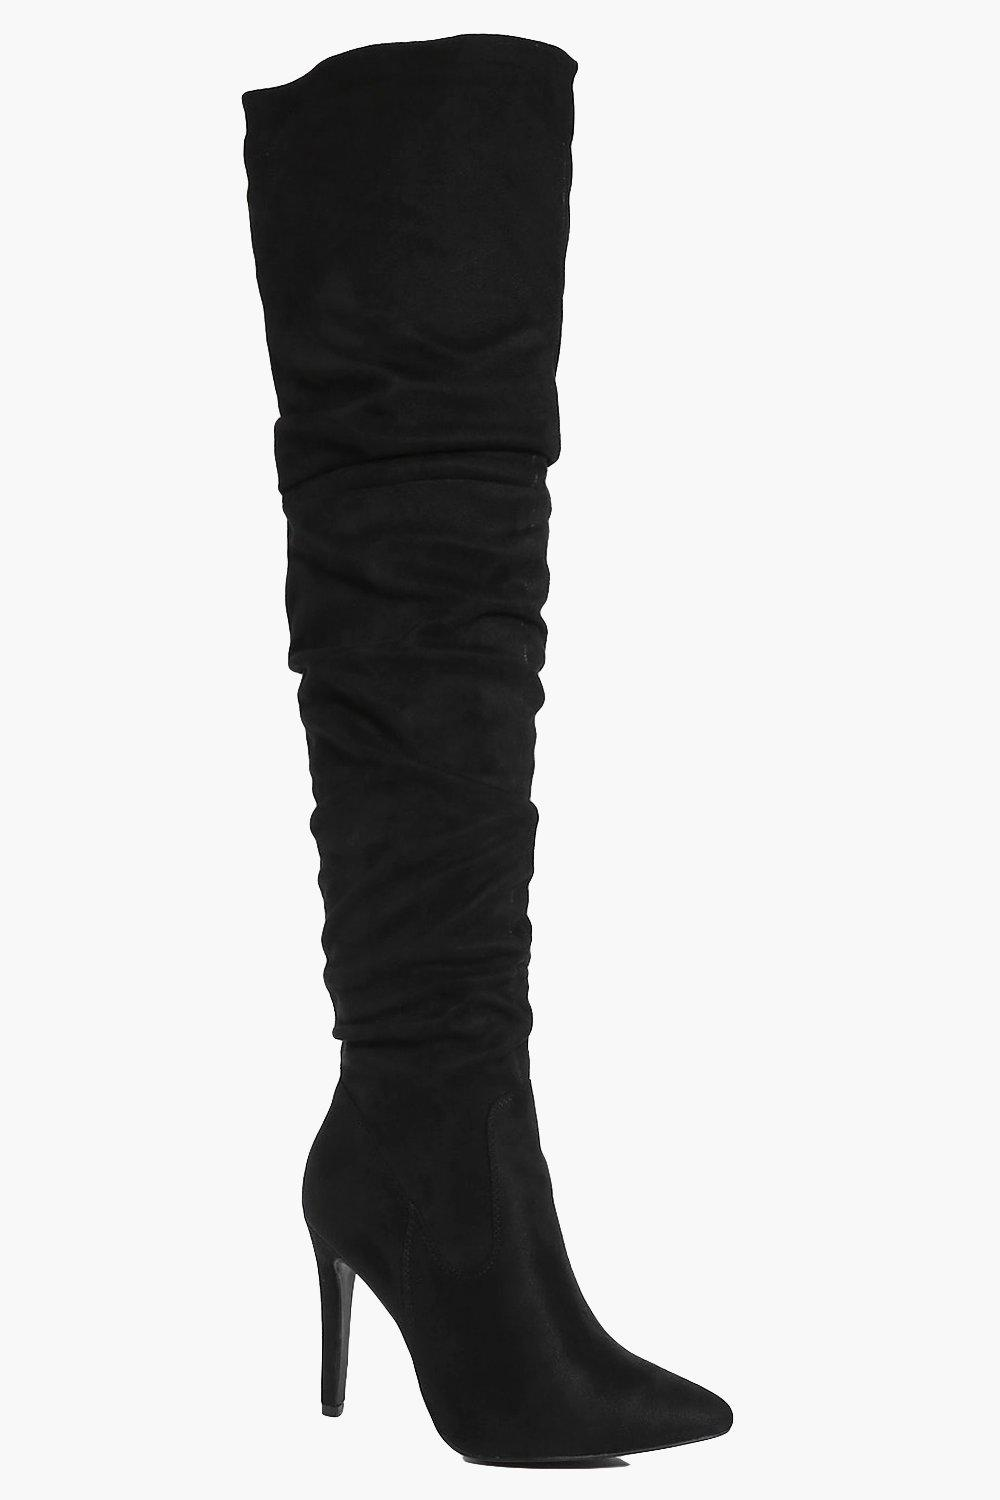 boohoo Ruched Pointed Over The Knee Boot - black